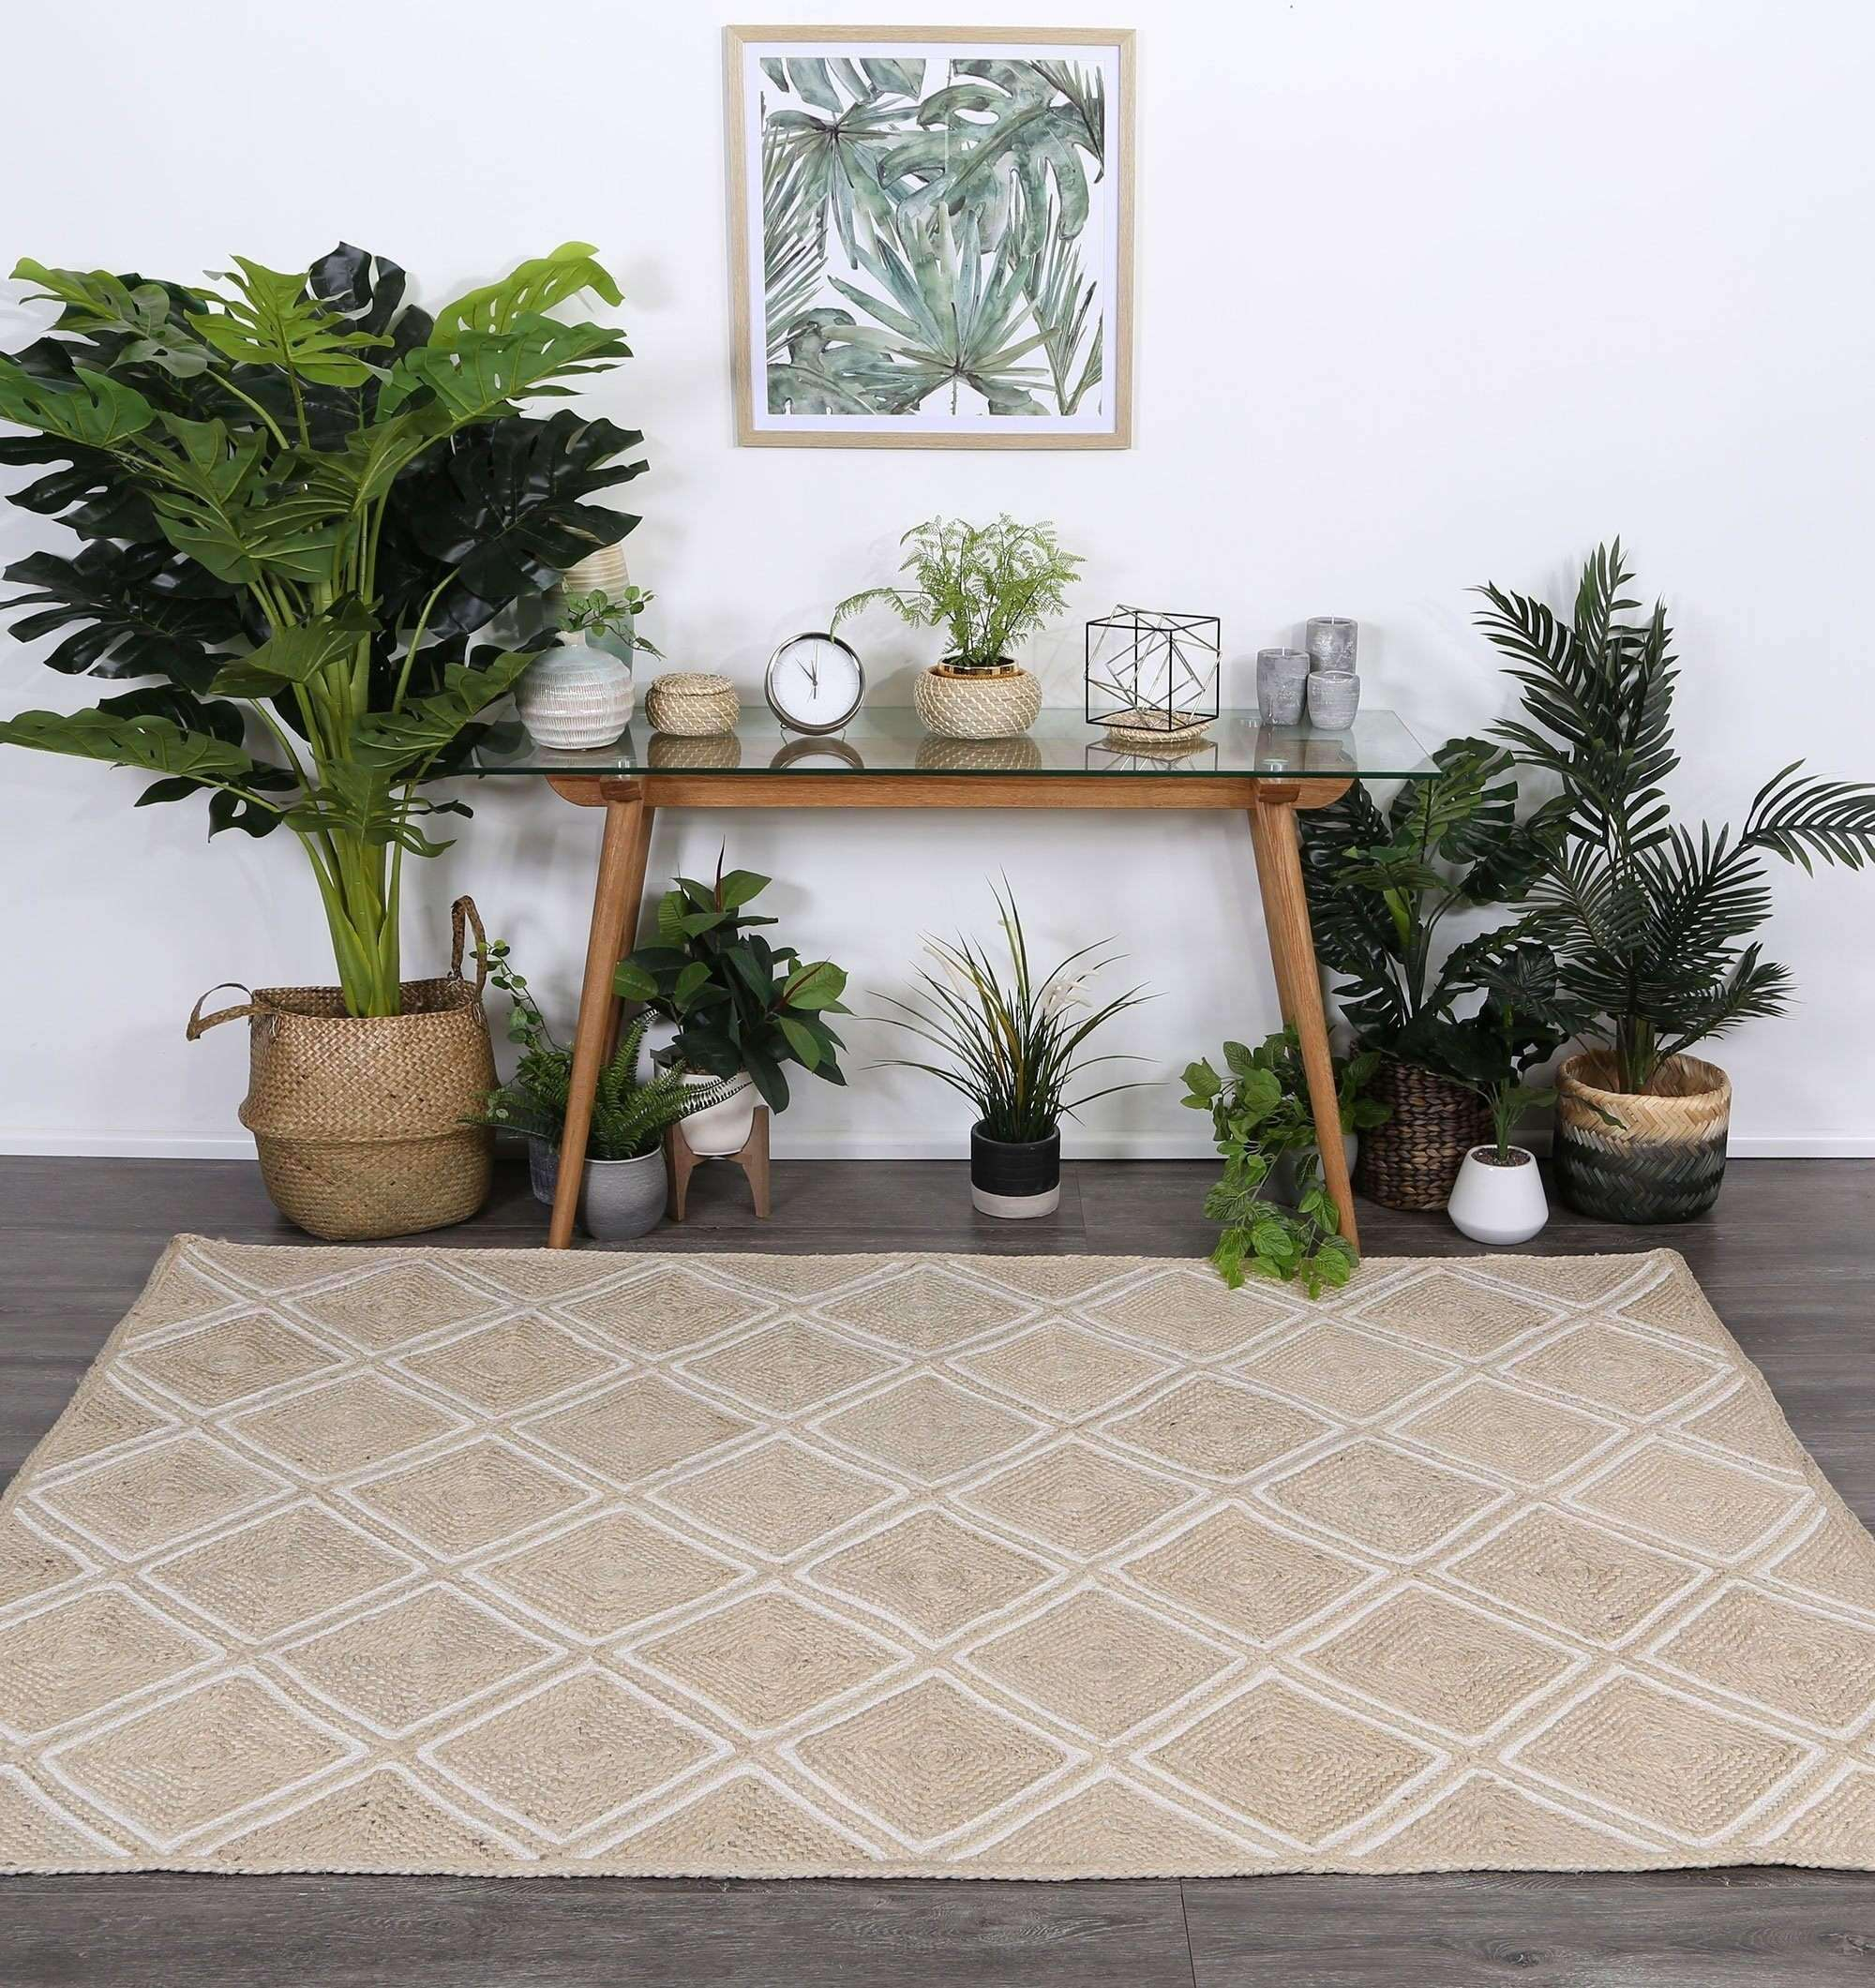 Cameron Natural Parquetry Pearl Rug, [cheapest rugs online], [au rugs], [rugs australia]